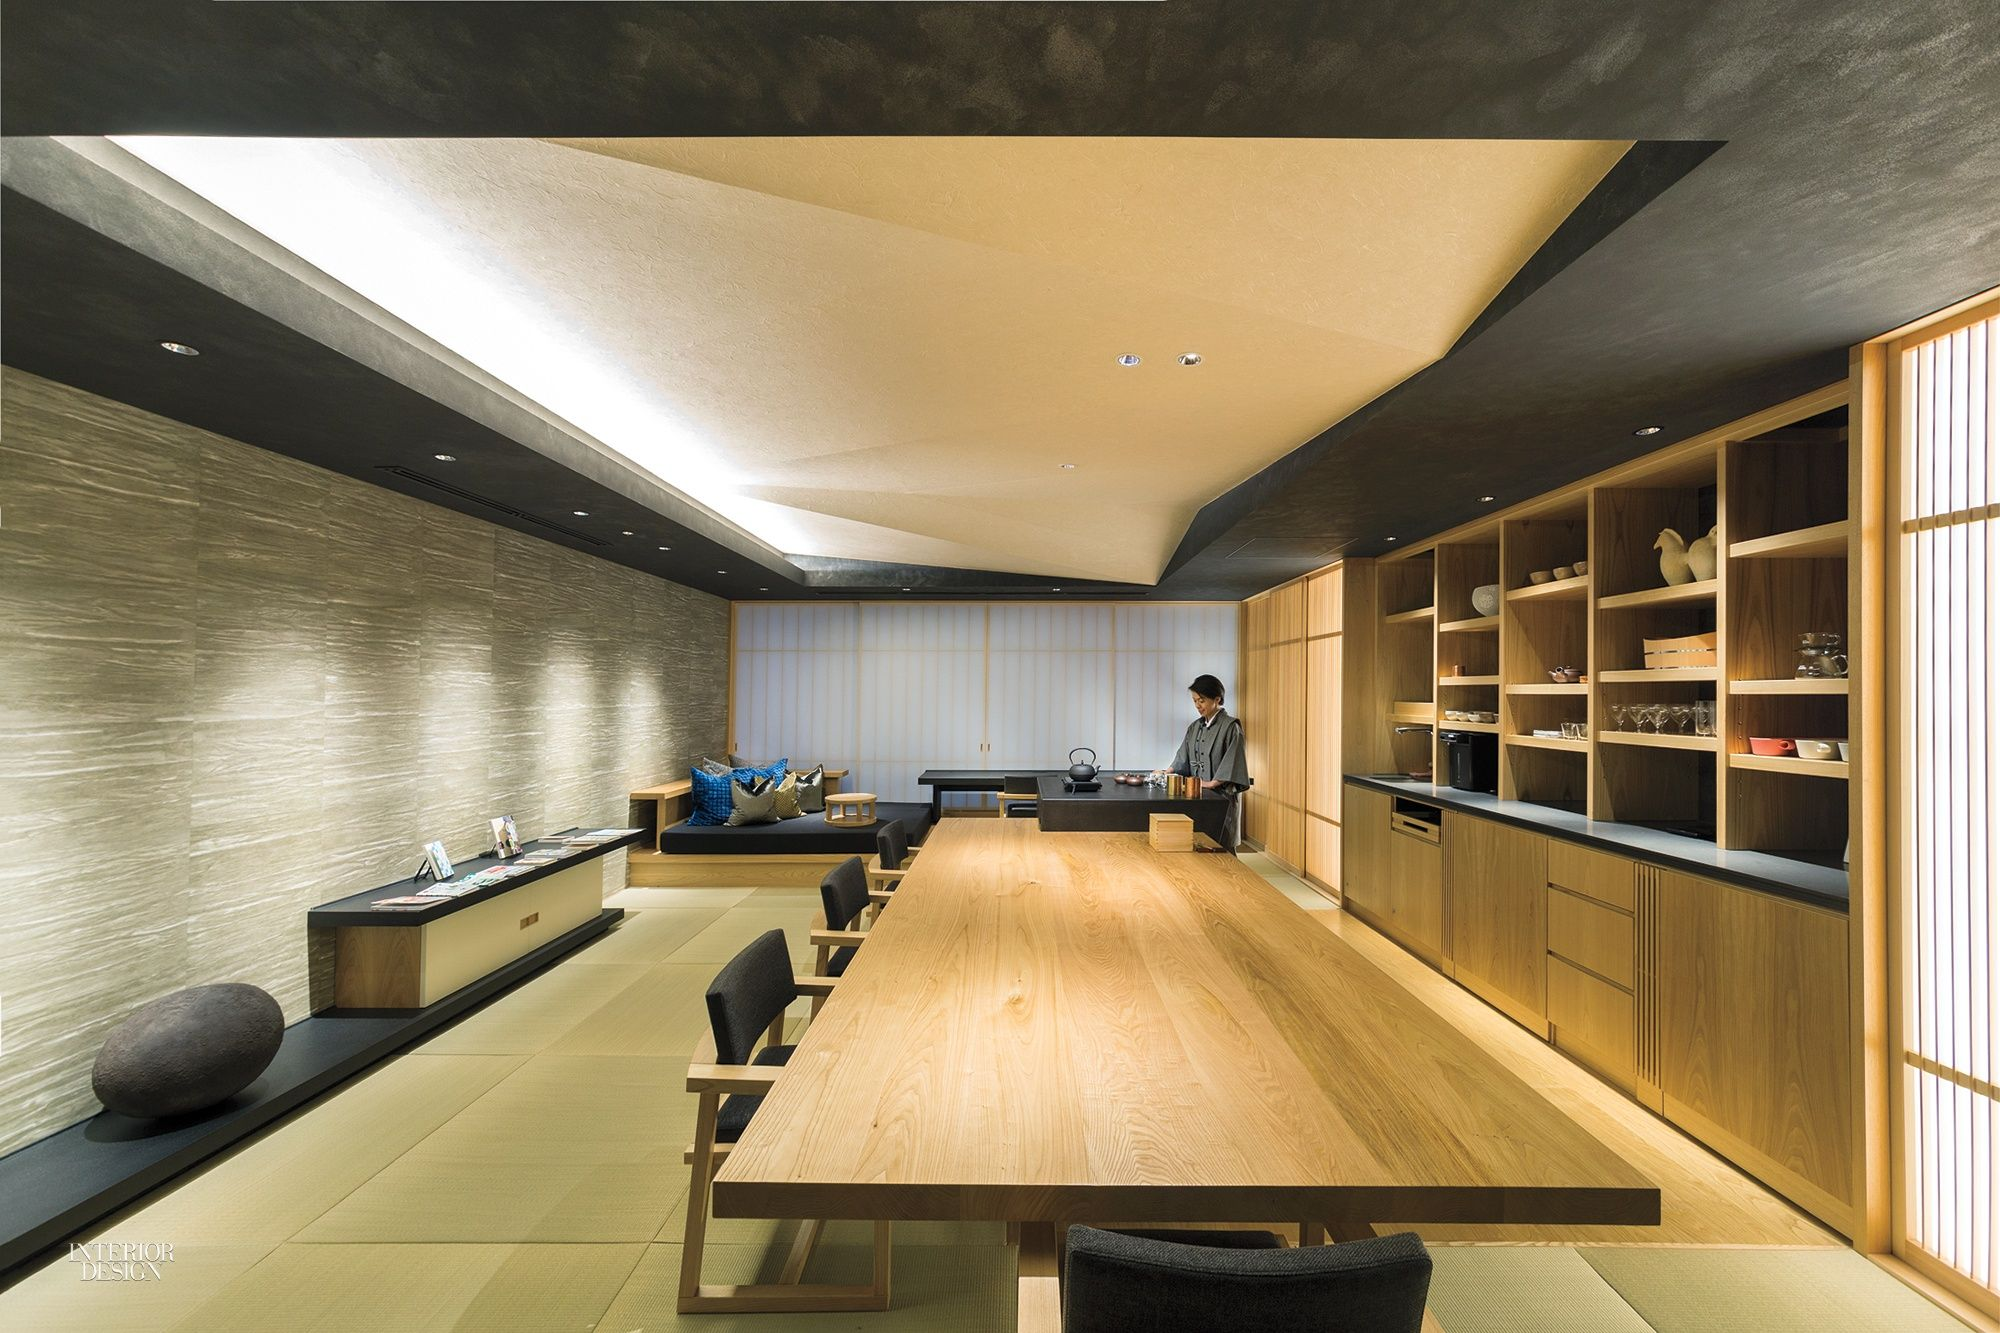 Hoshinoya Tokyo Spa Hotel By Rie Azuma Reinvents The Traditional Anese Ryokan